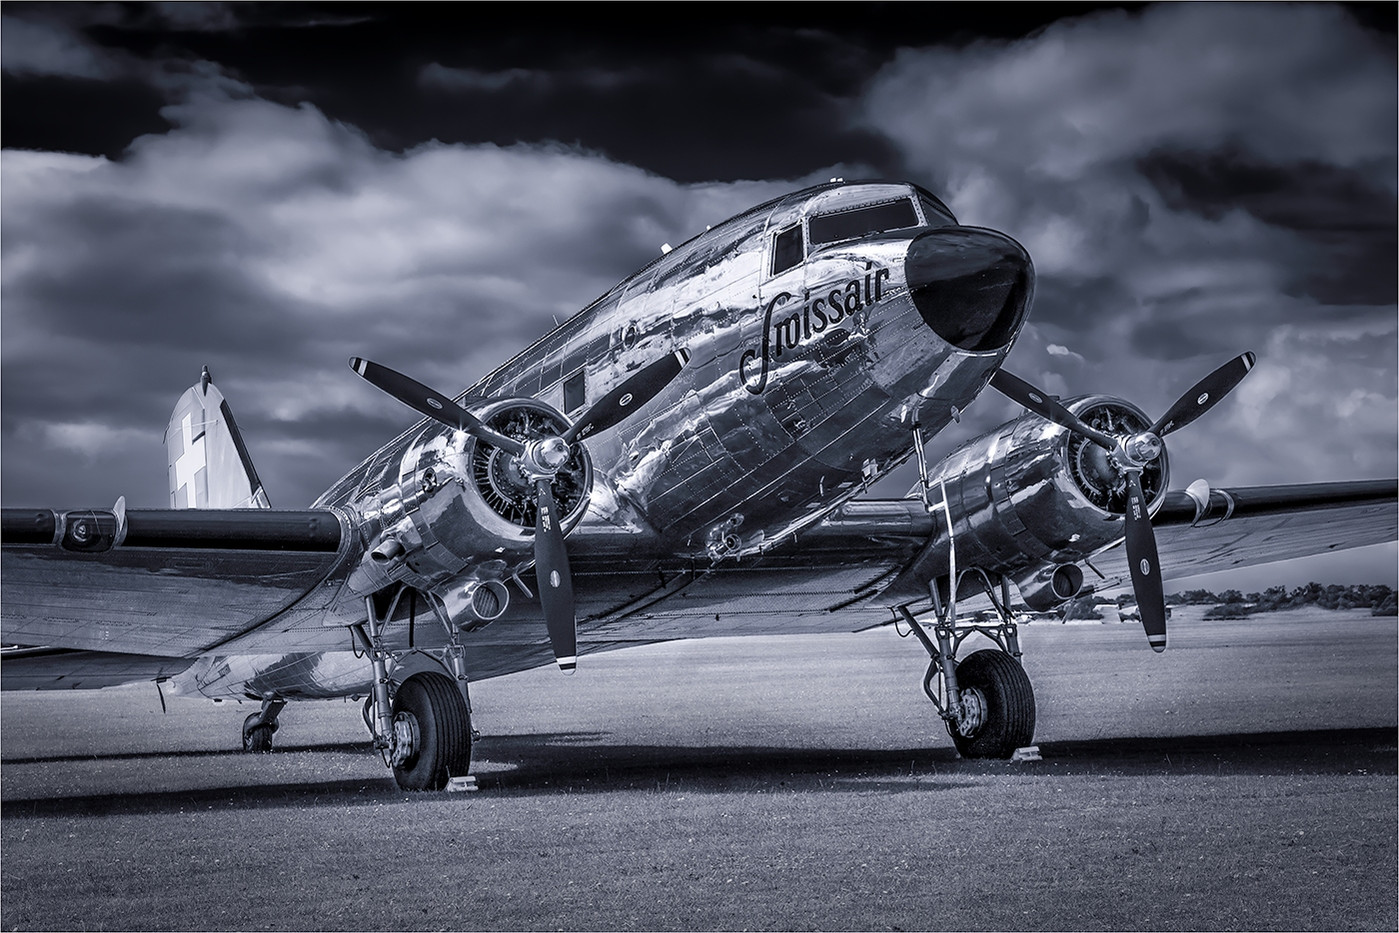 18 SWISSAIR DC3 by David Peek